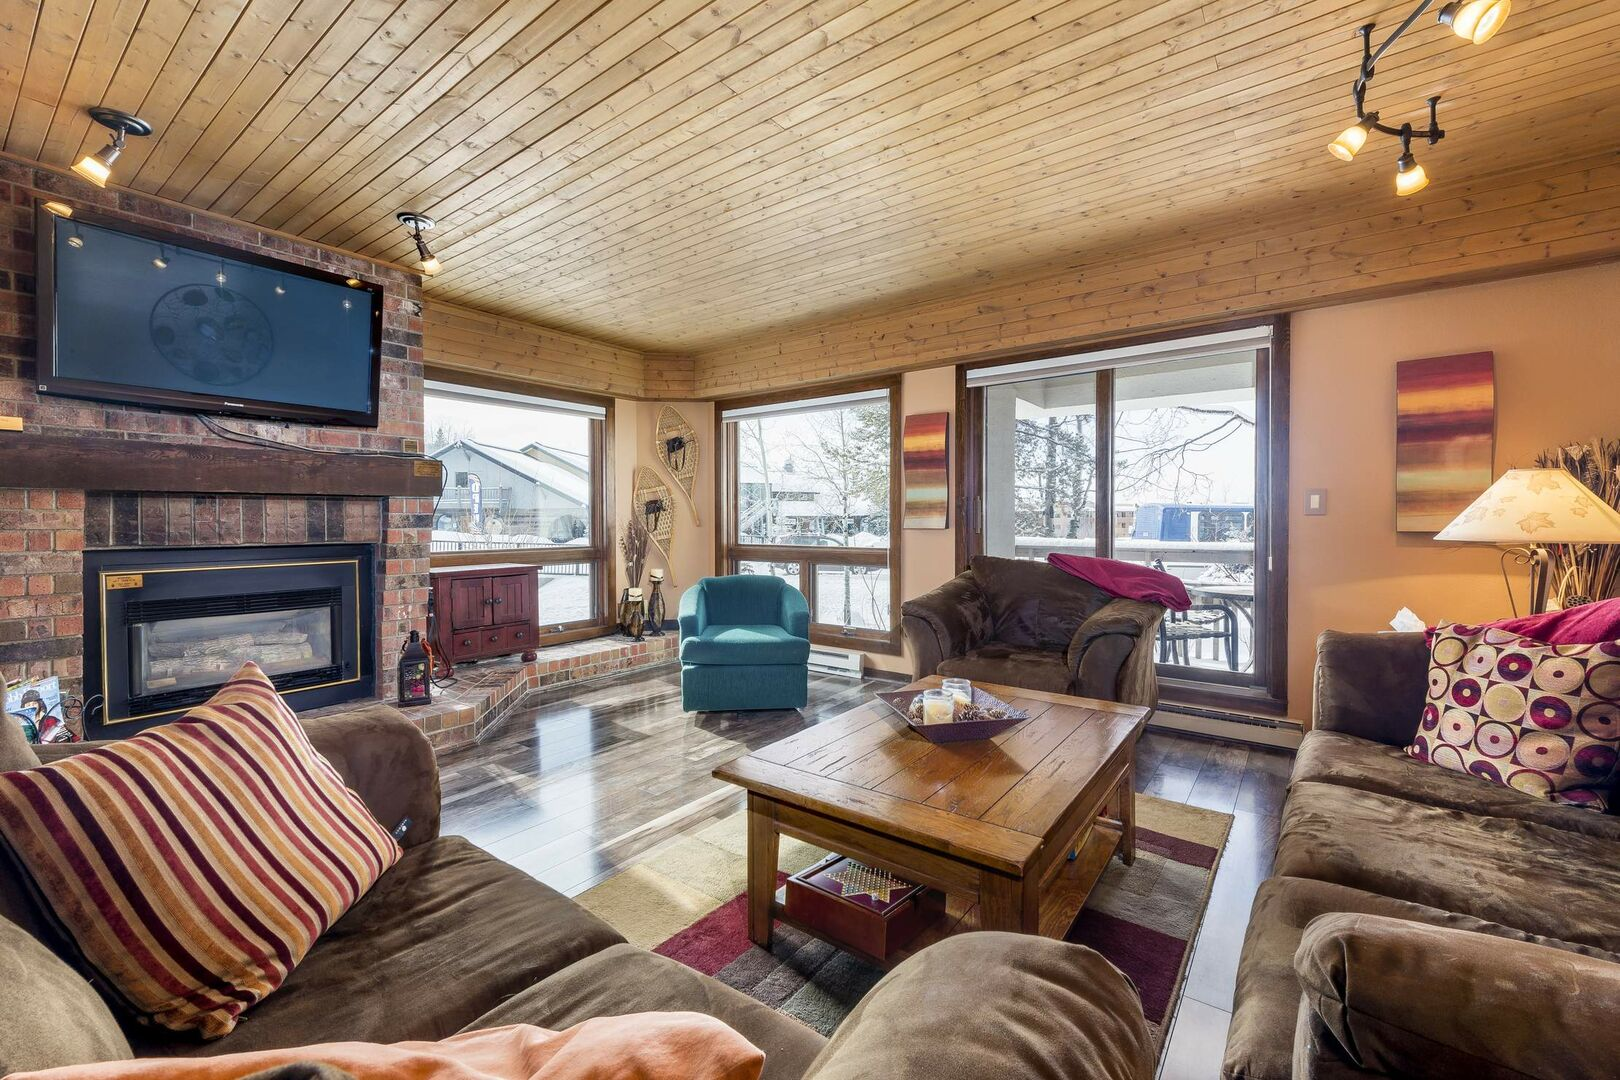 The living area incorporates exposed brick and natural wood, with a large TV, gas fireplace and the entrance to the deck.